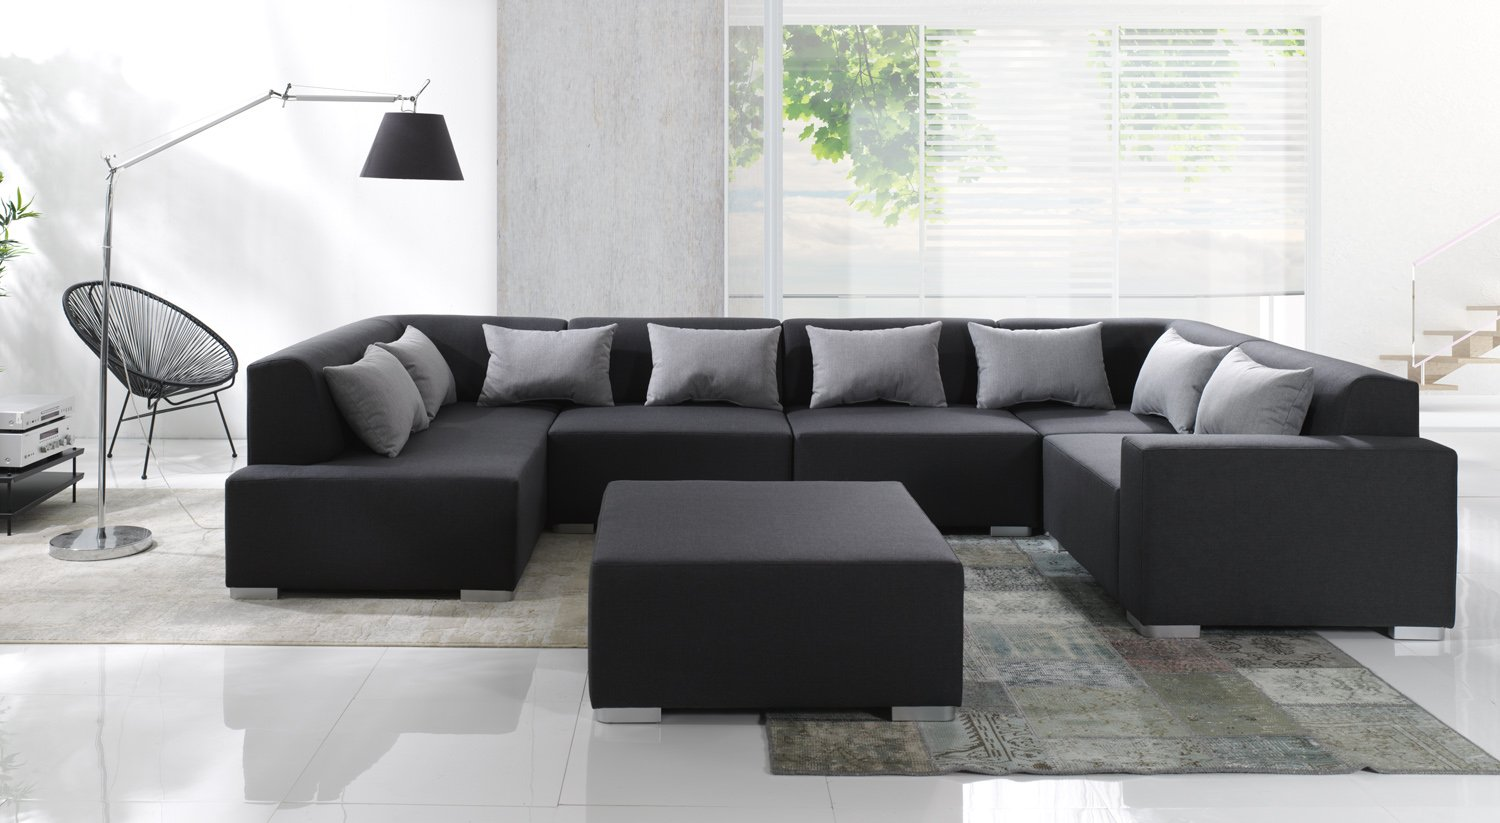 Sofa Couchgarnitur Couch Sofagarnitur Cubic 6 Teile Modulsystem Inkl